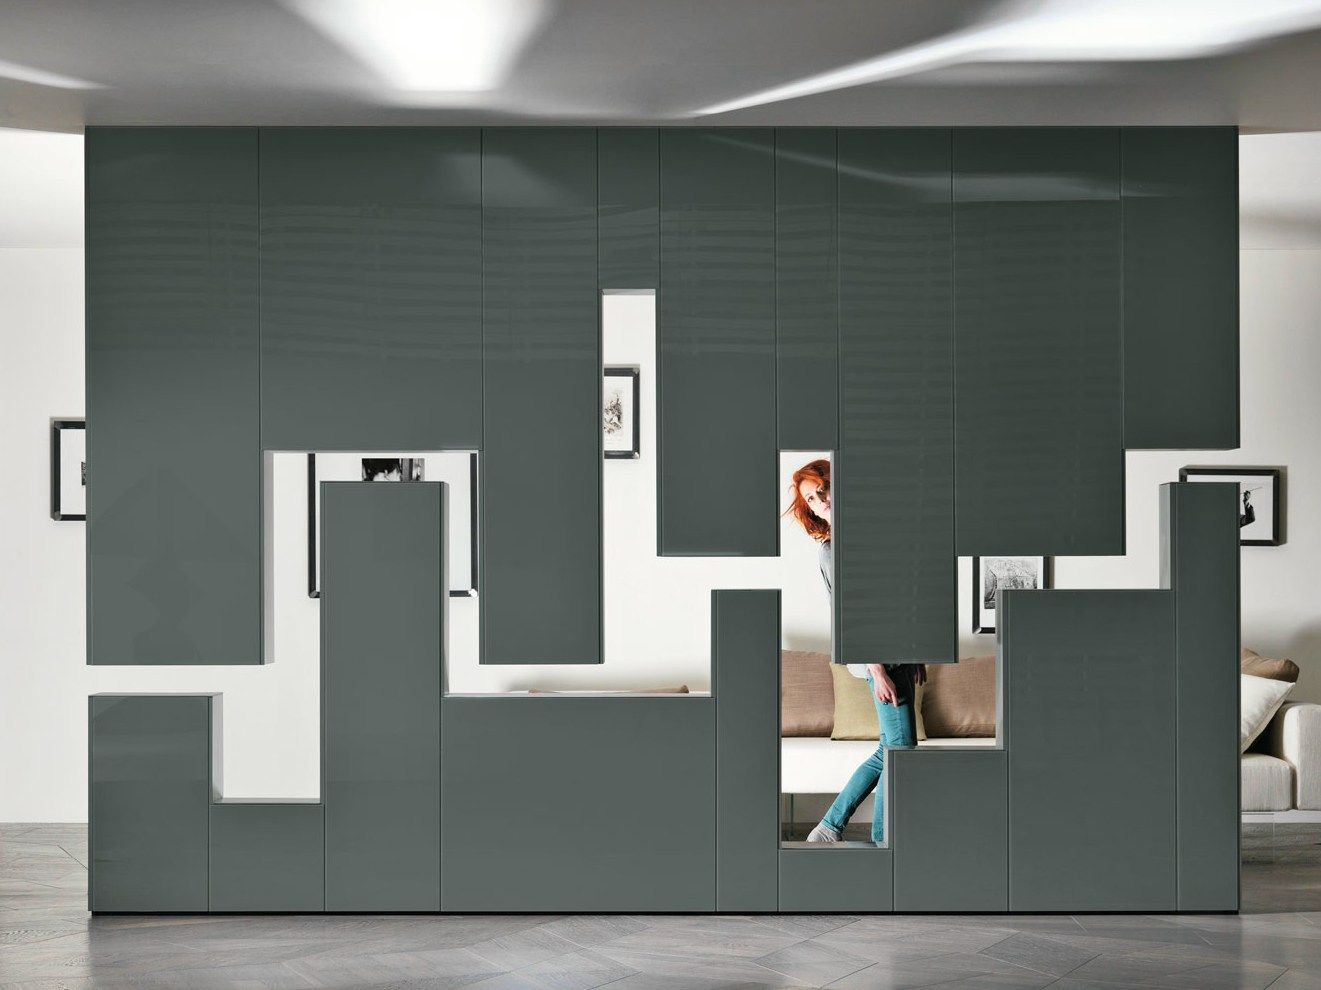 Divider wallmounted storage wall mm lagolinea weightless by